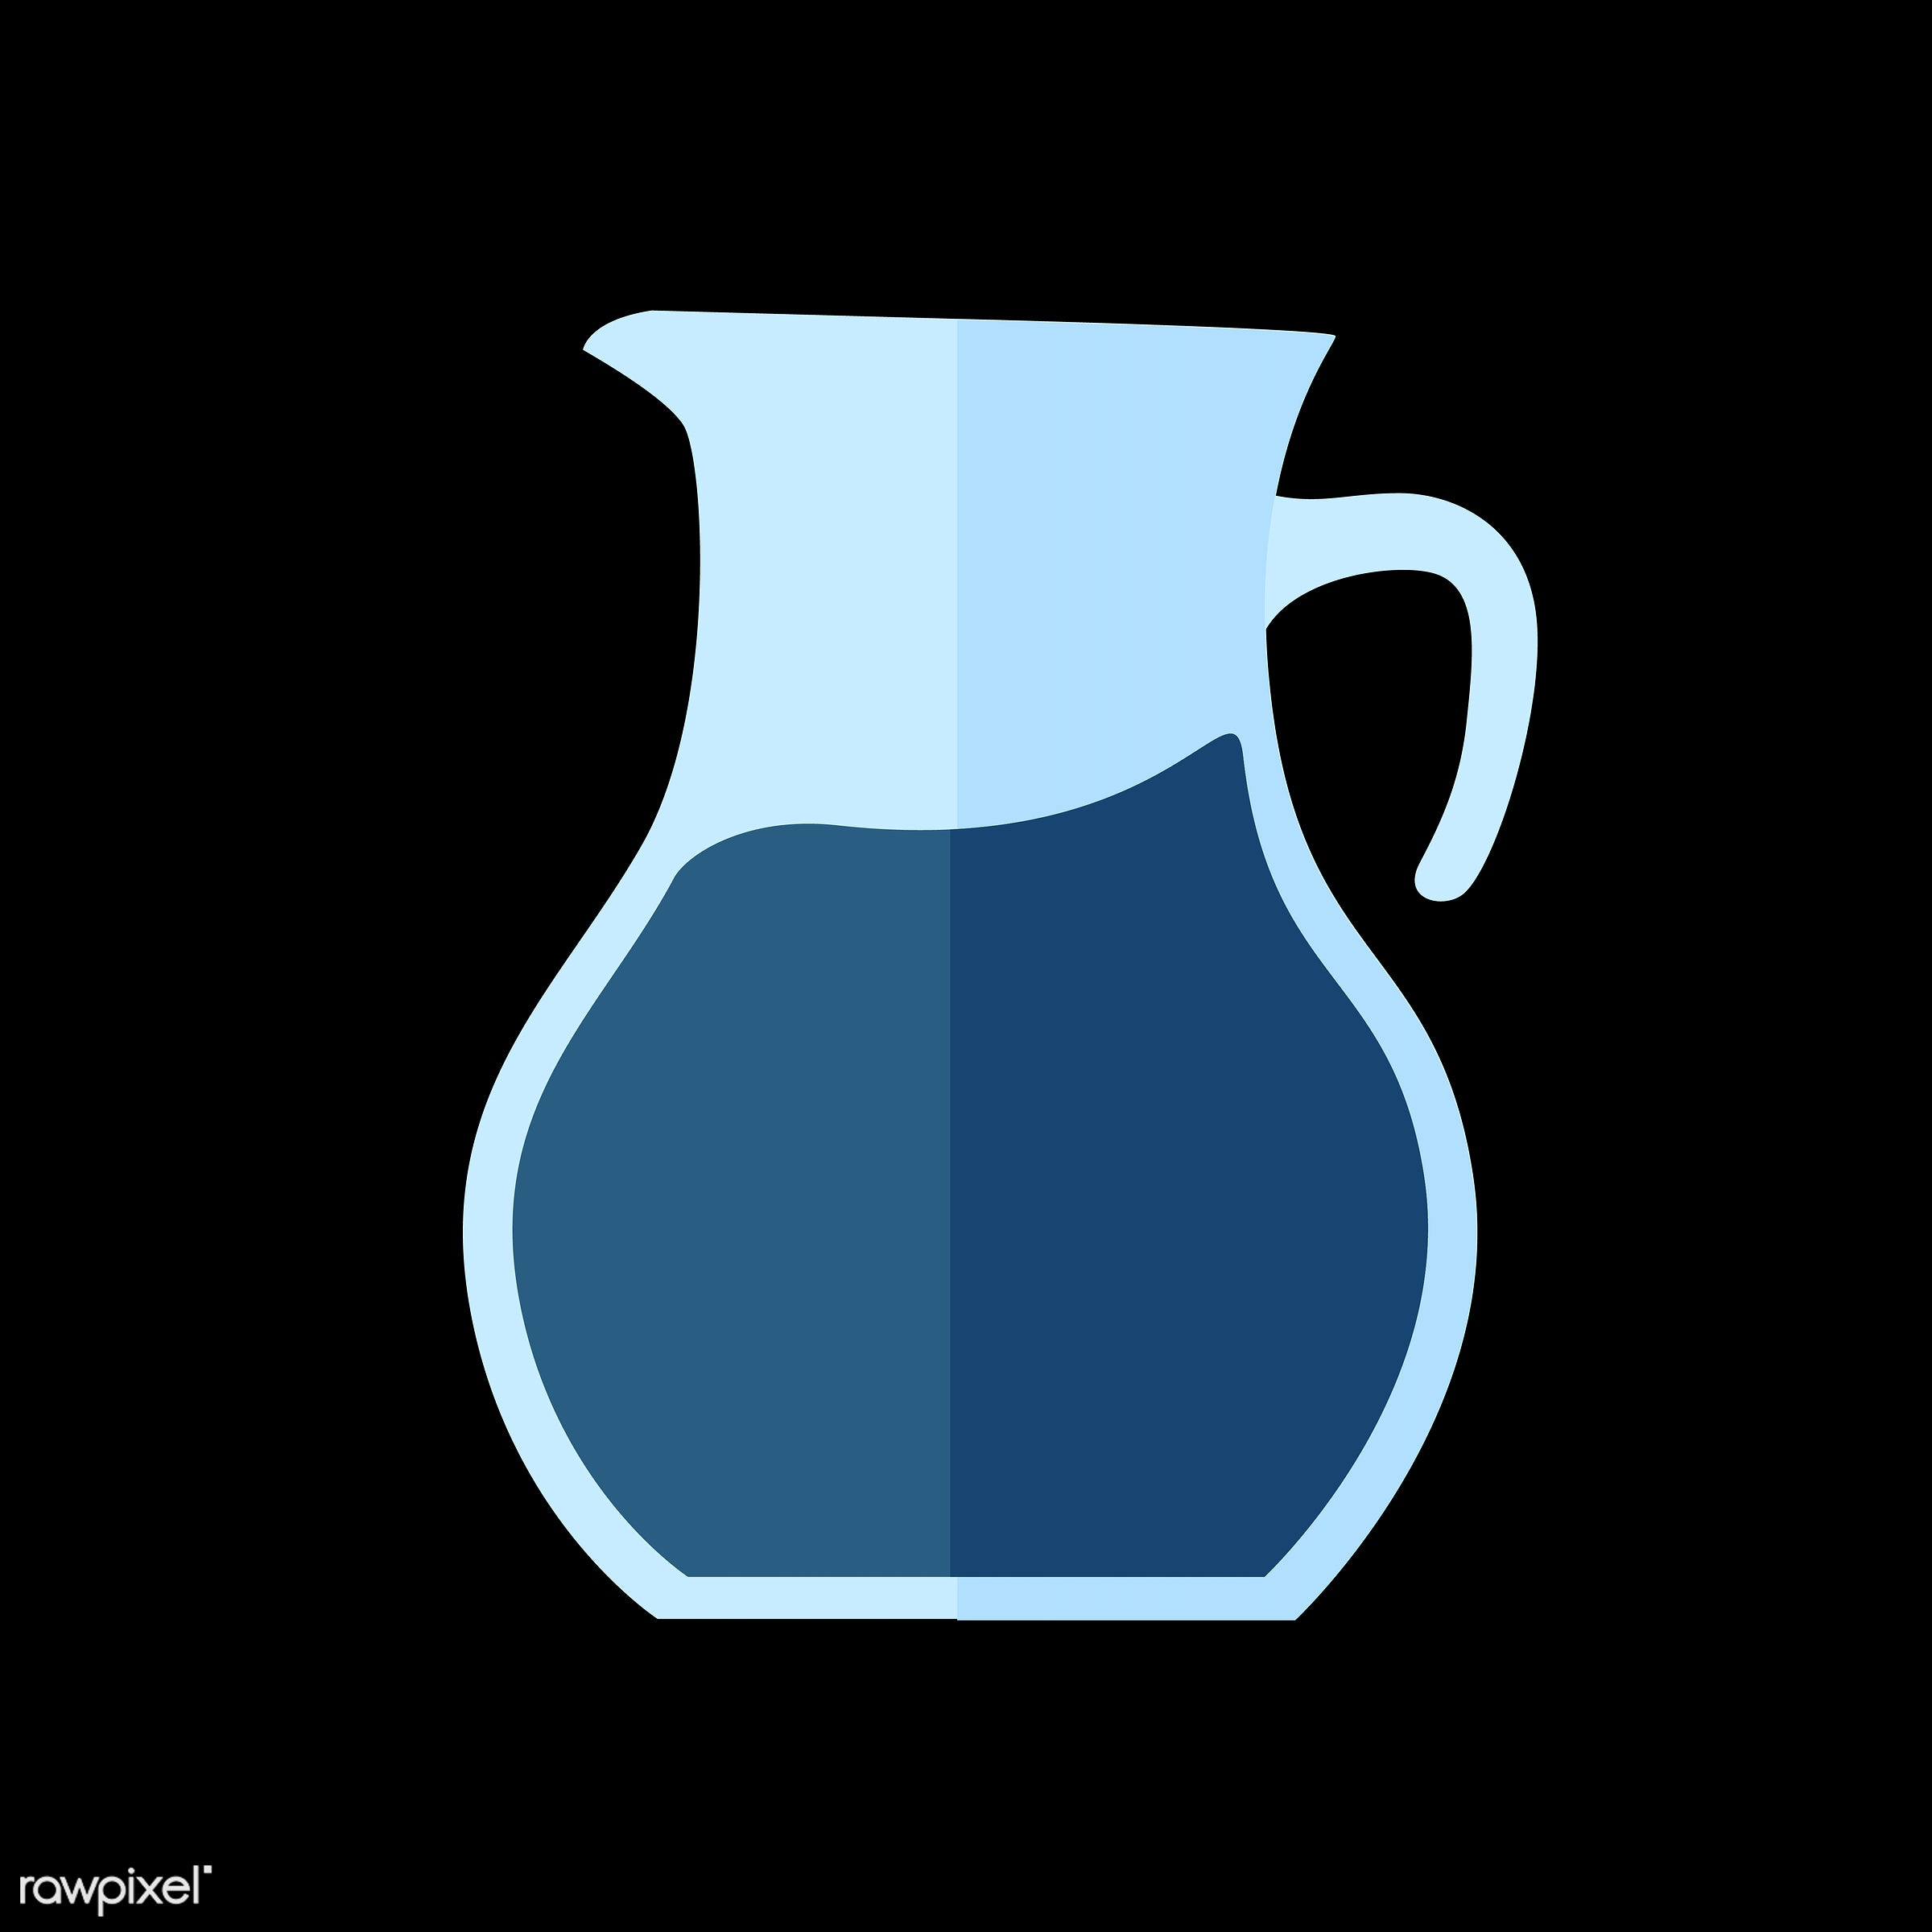 vector, graphic, illustration, icon, symbol, colorful, cute, drink, beverage, water, blue, jug, lemonade